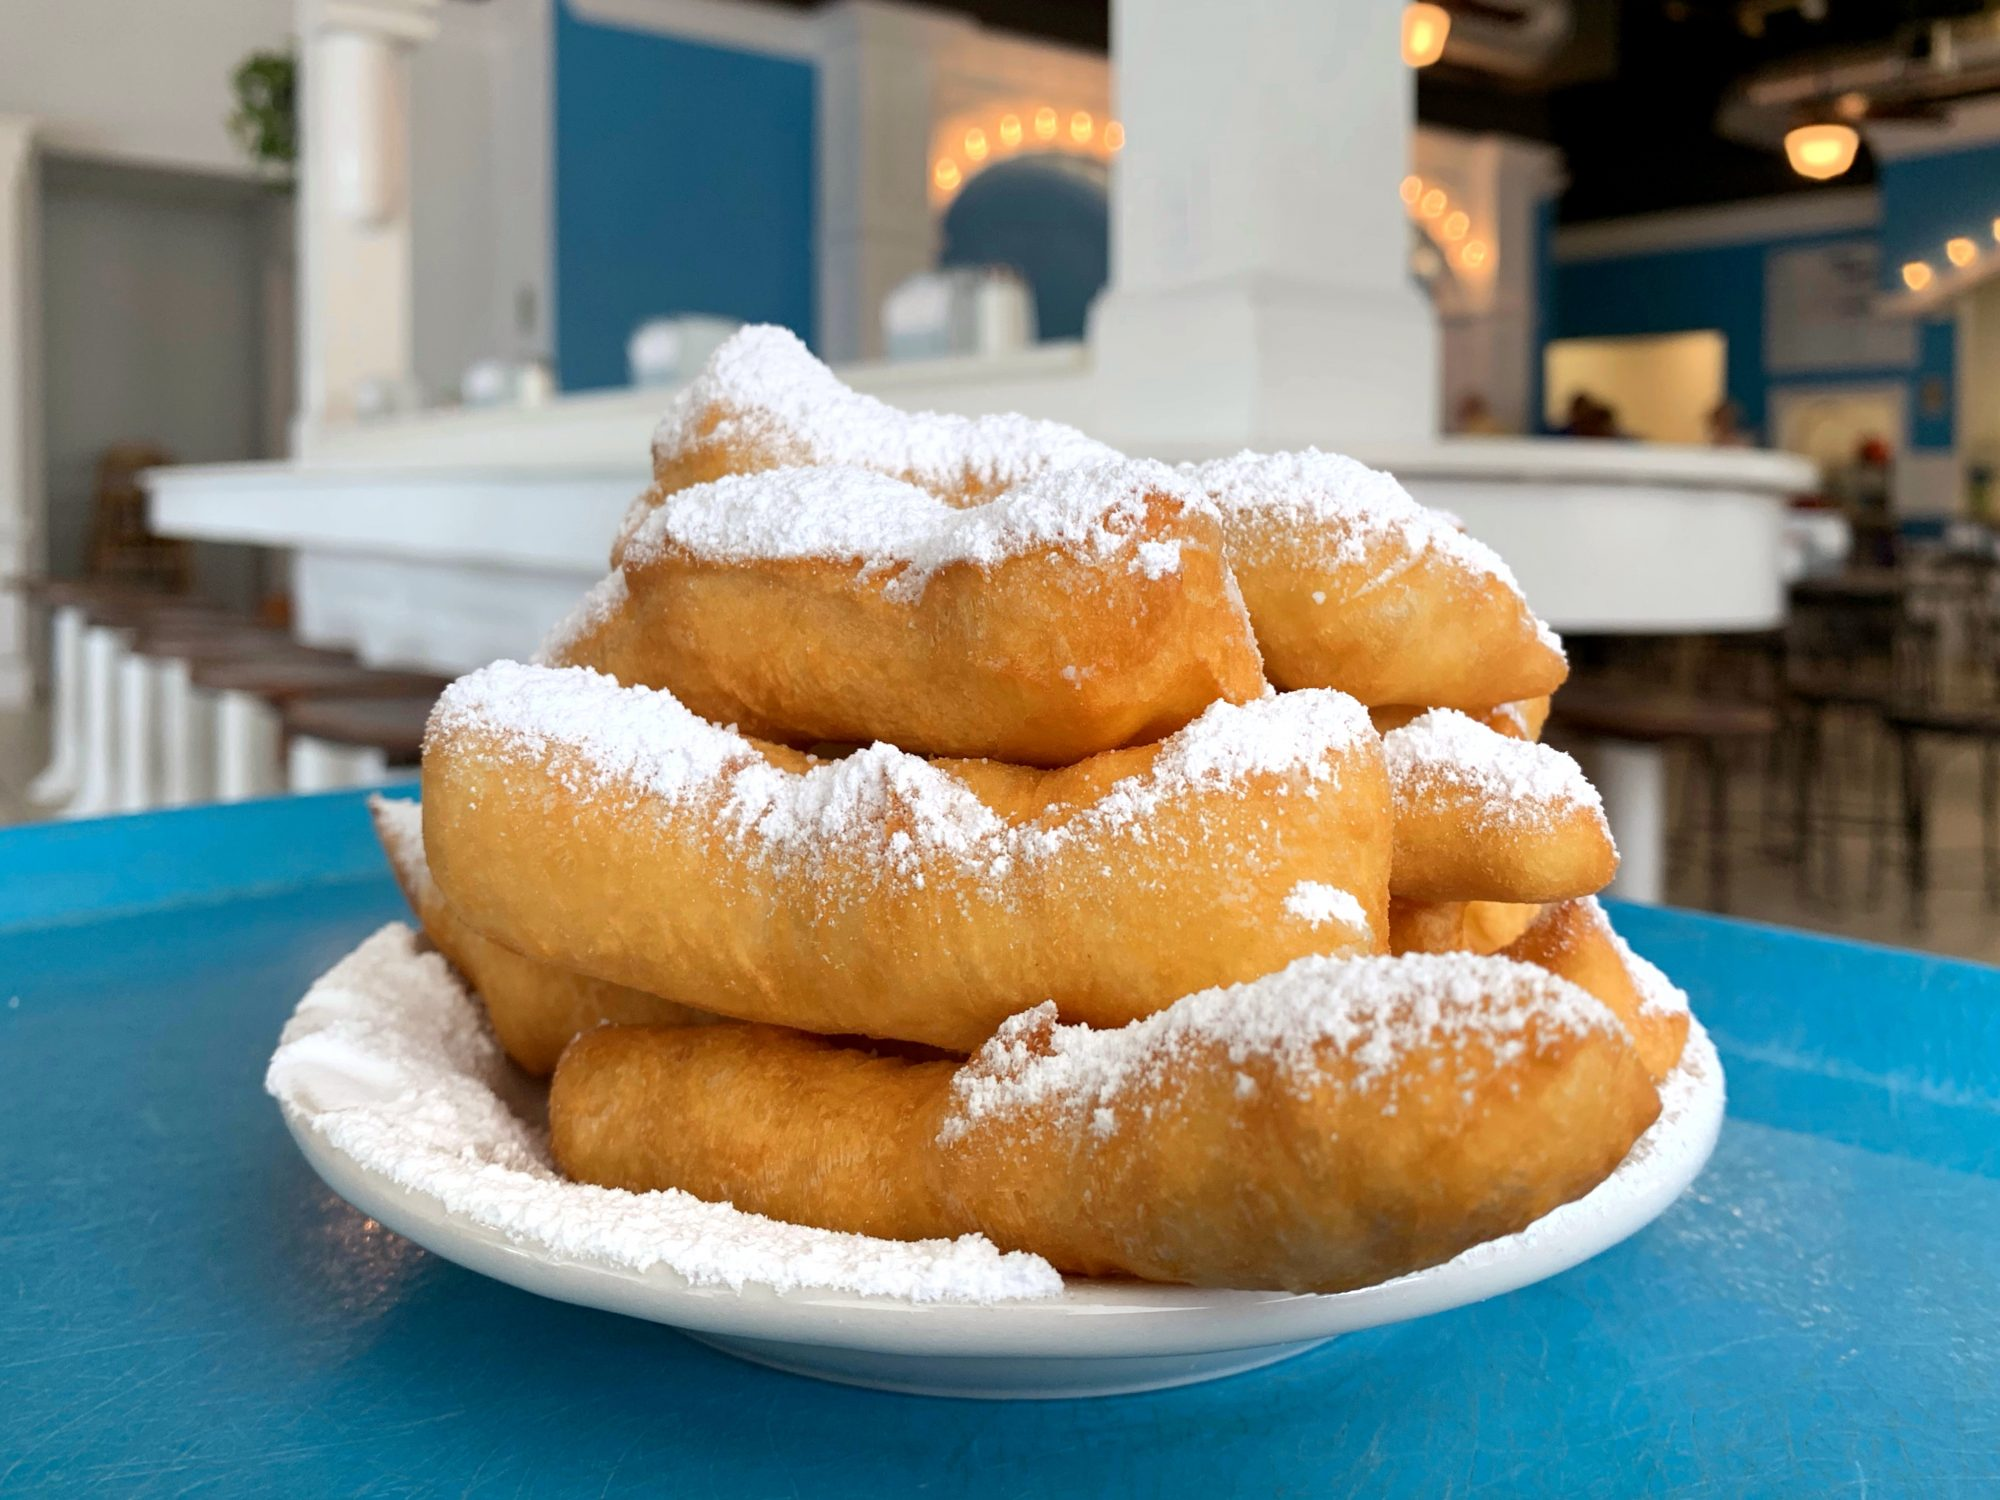 The Best Beignets in New Orleans Are in Baton Rouge